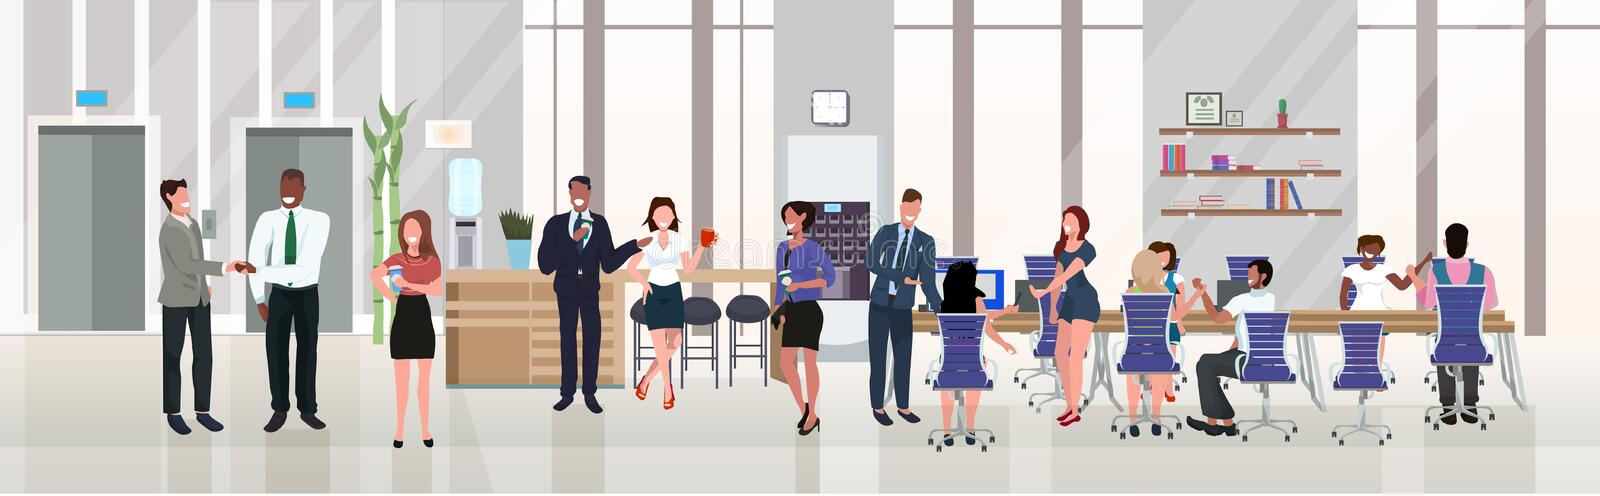 Businesspeople employees successful teamwork concept hardworking process open space creative co-working center modern royalty free illustration